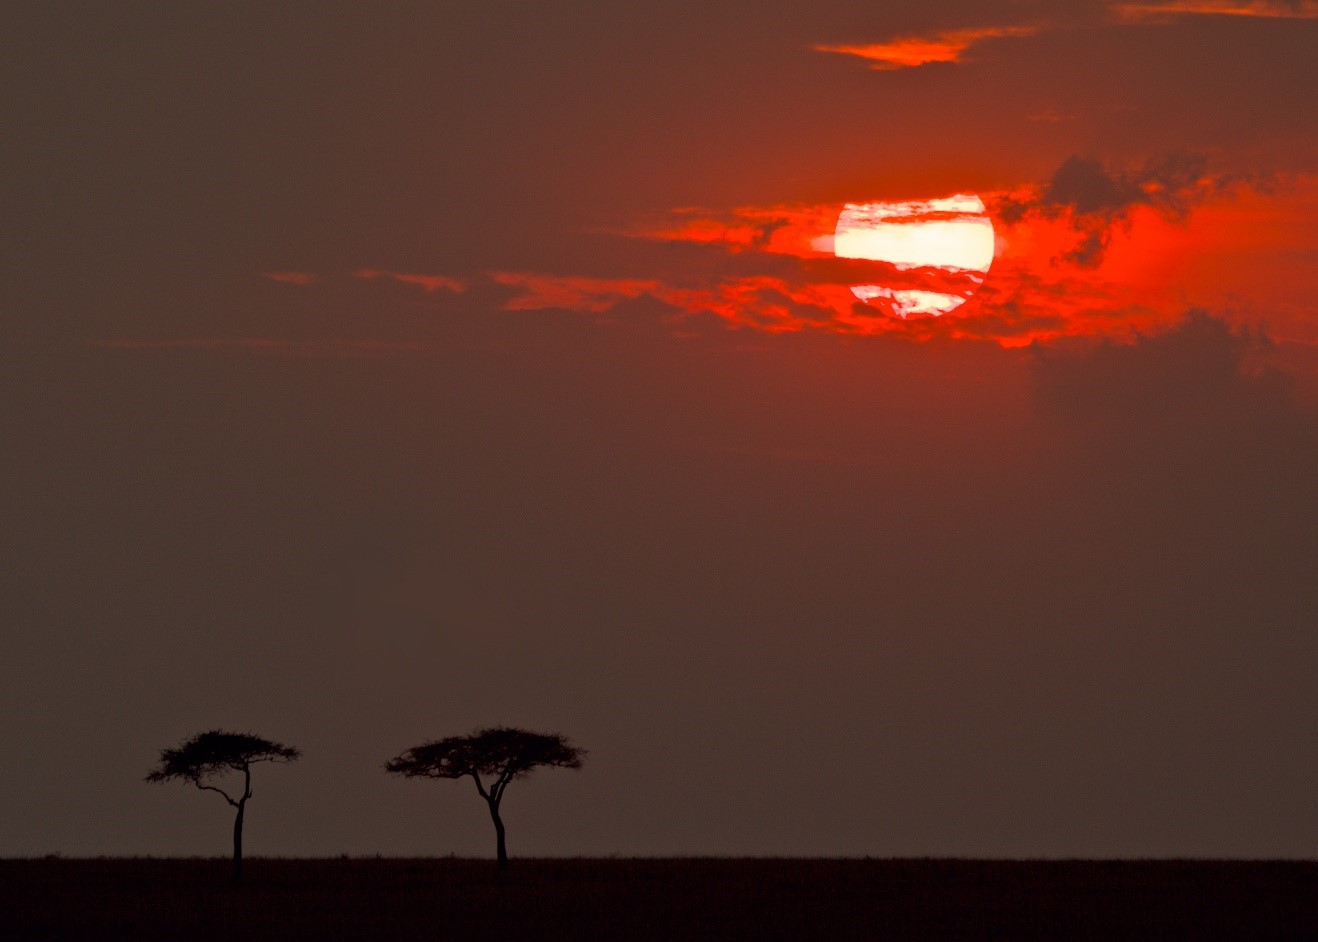 a red sun sets on Kenya's savanna with acacia trees in the foreground